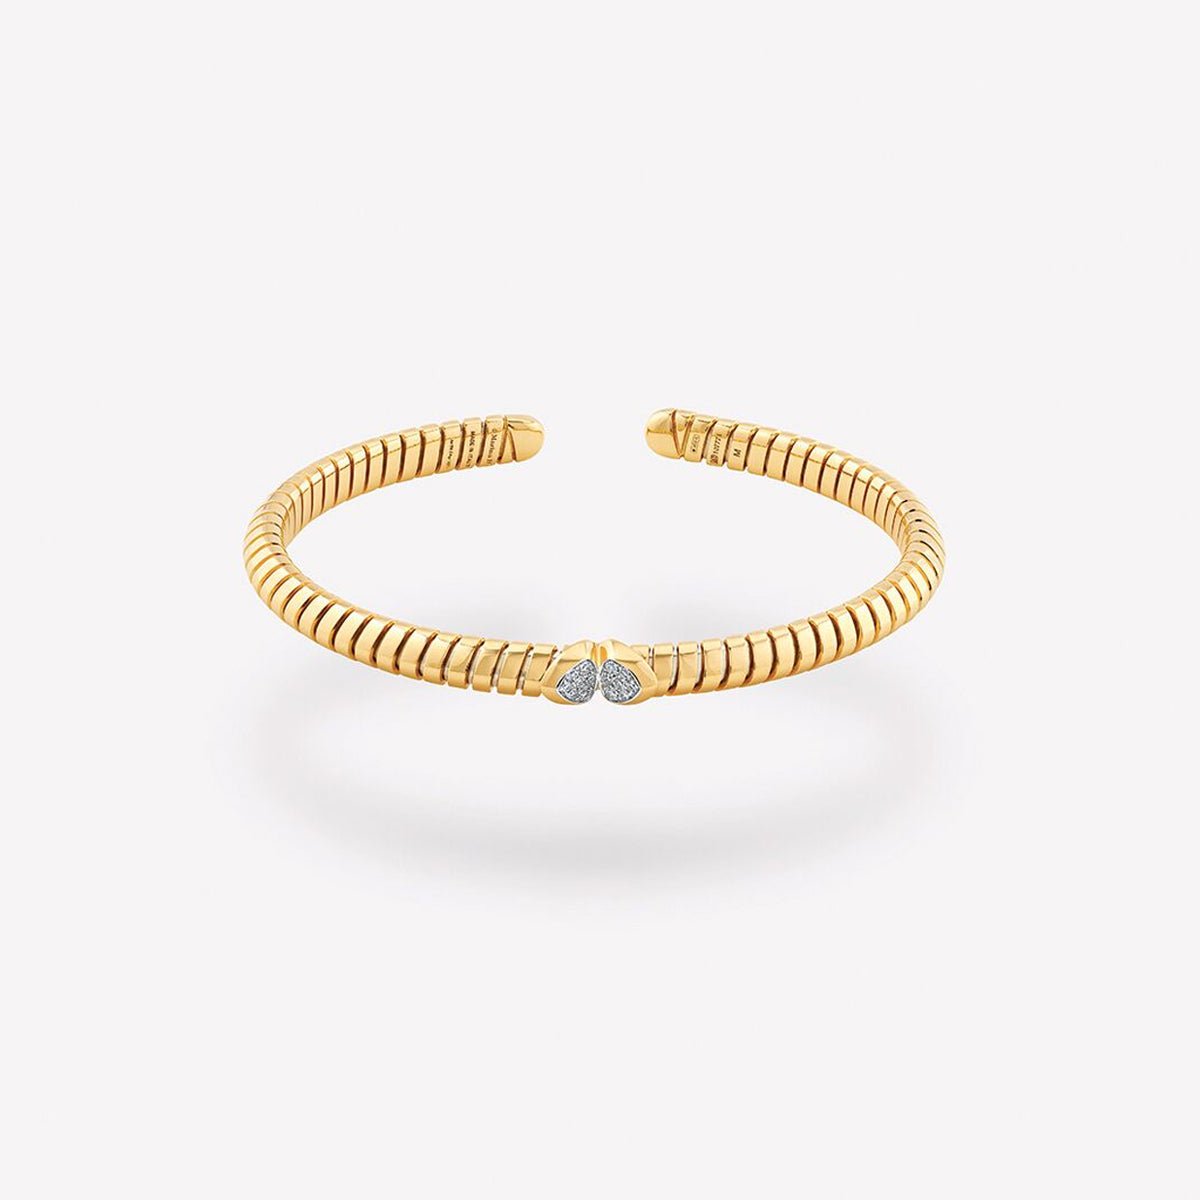 marinab.com, Trisolina Pavé Diamond Bangle